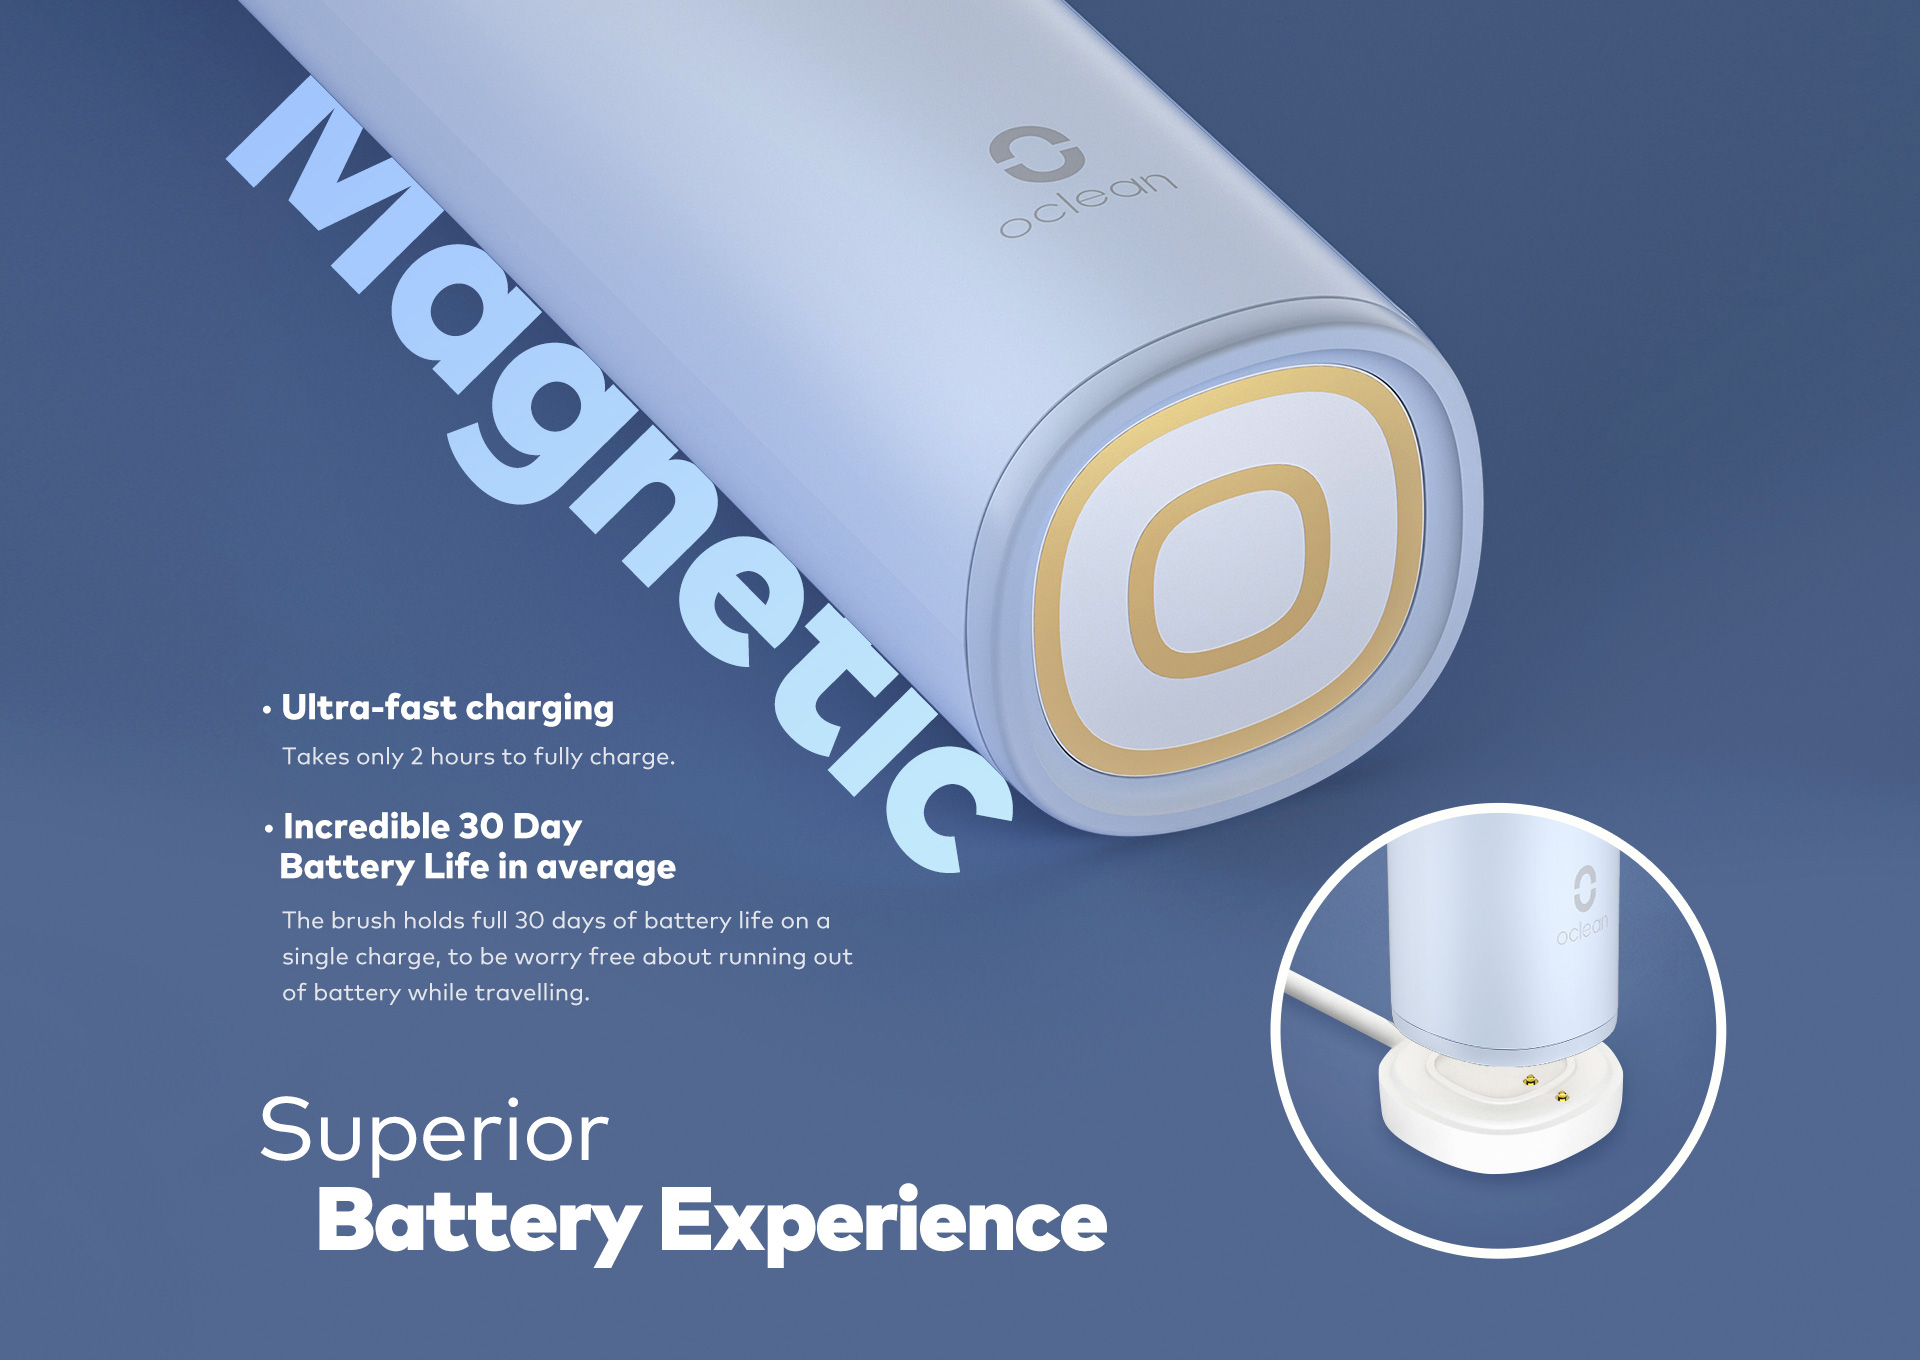 Ultra-faster charging incredible 30 day battery life in average